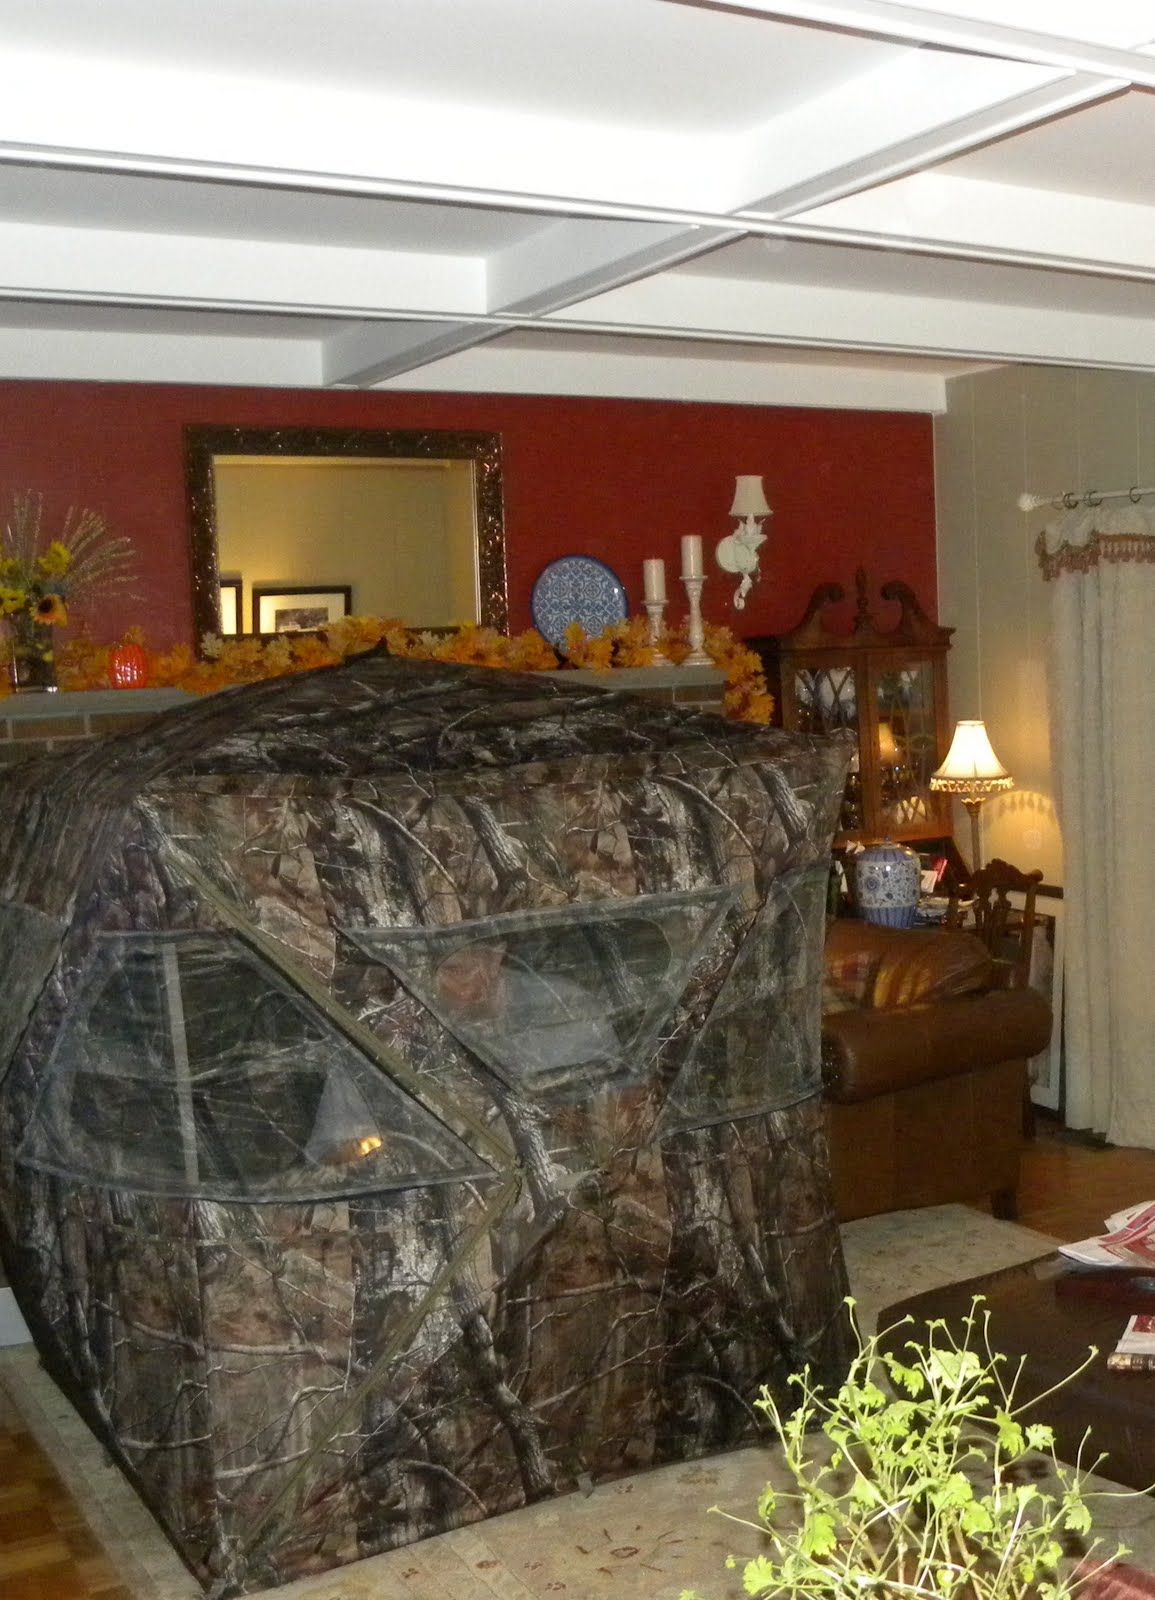 Newest wall on hunting room decor interior design ideas - Hunting room decorating ideas ...